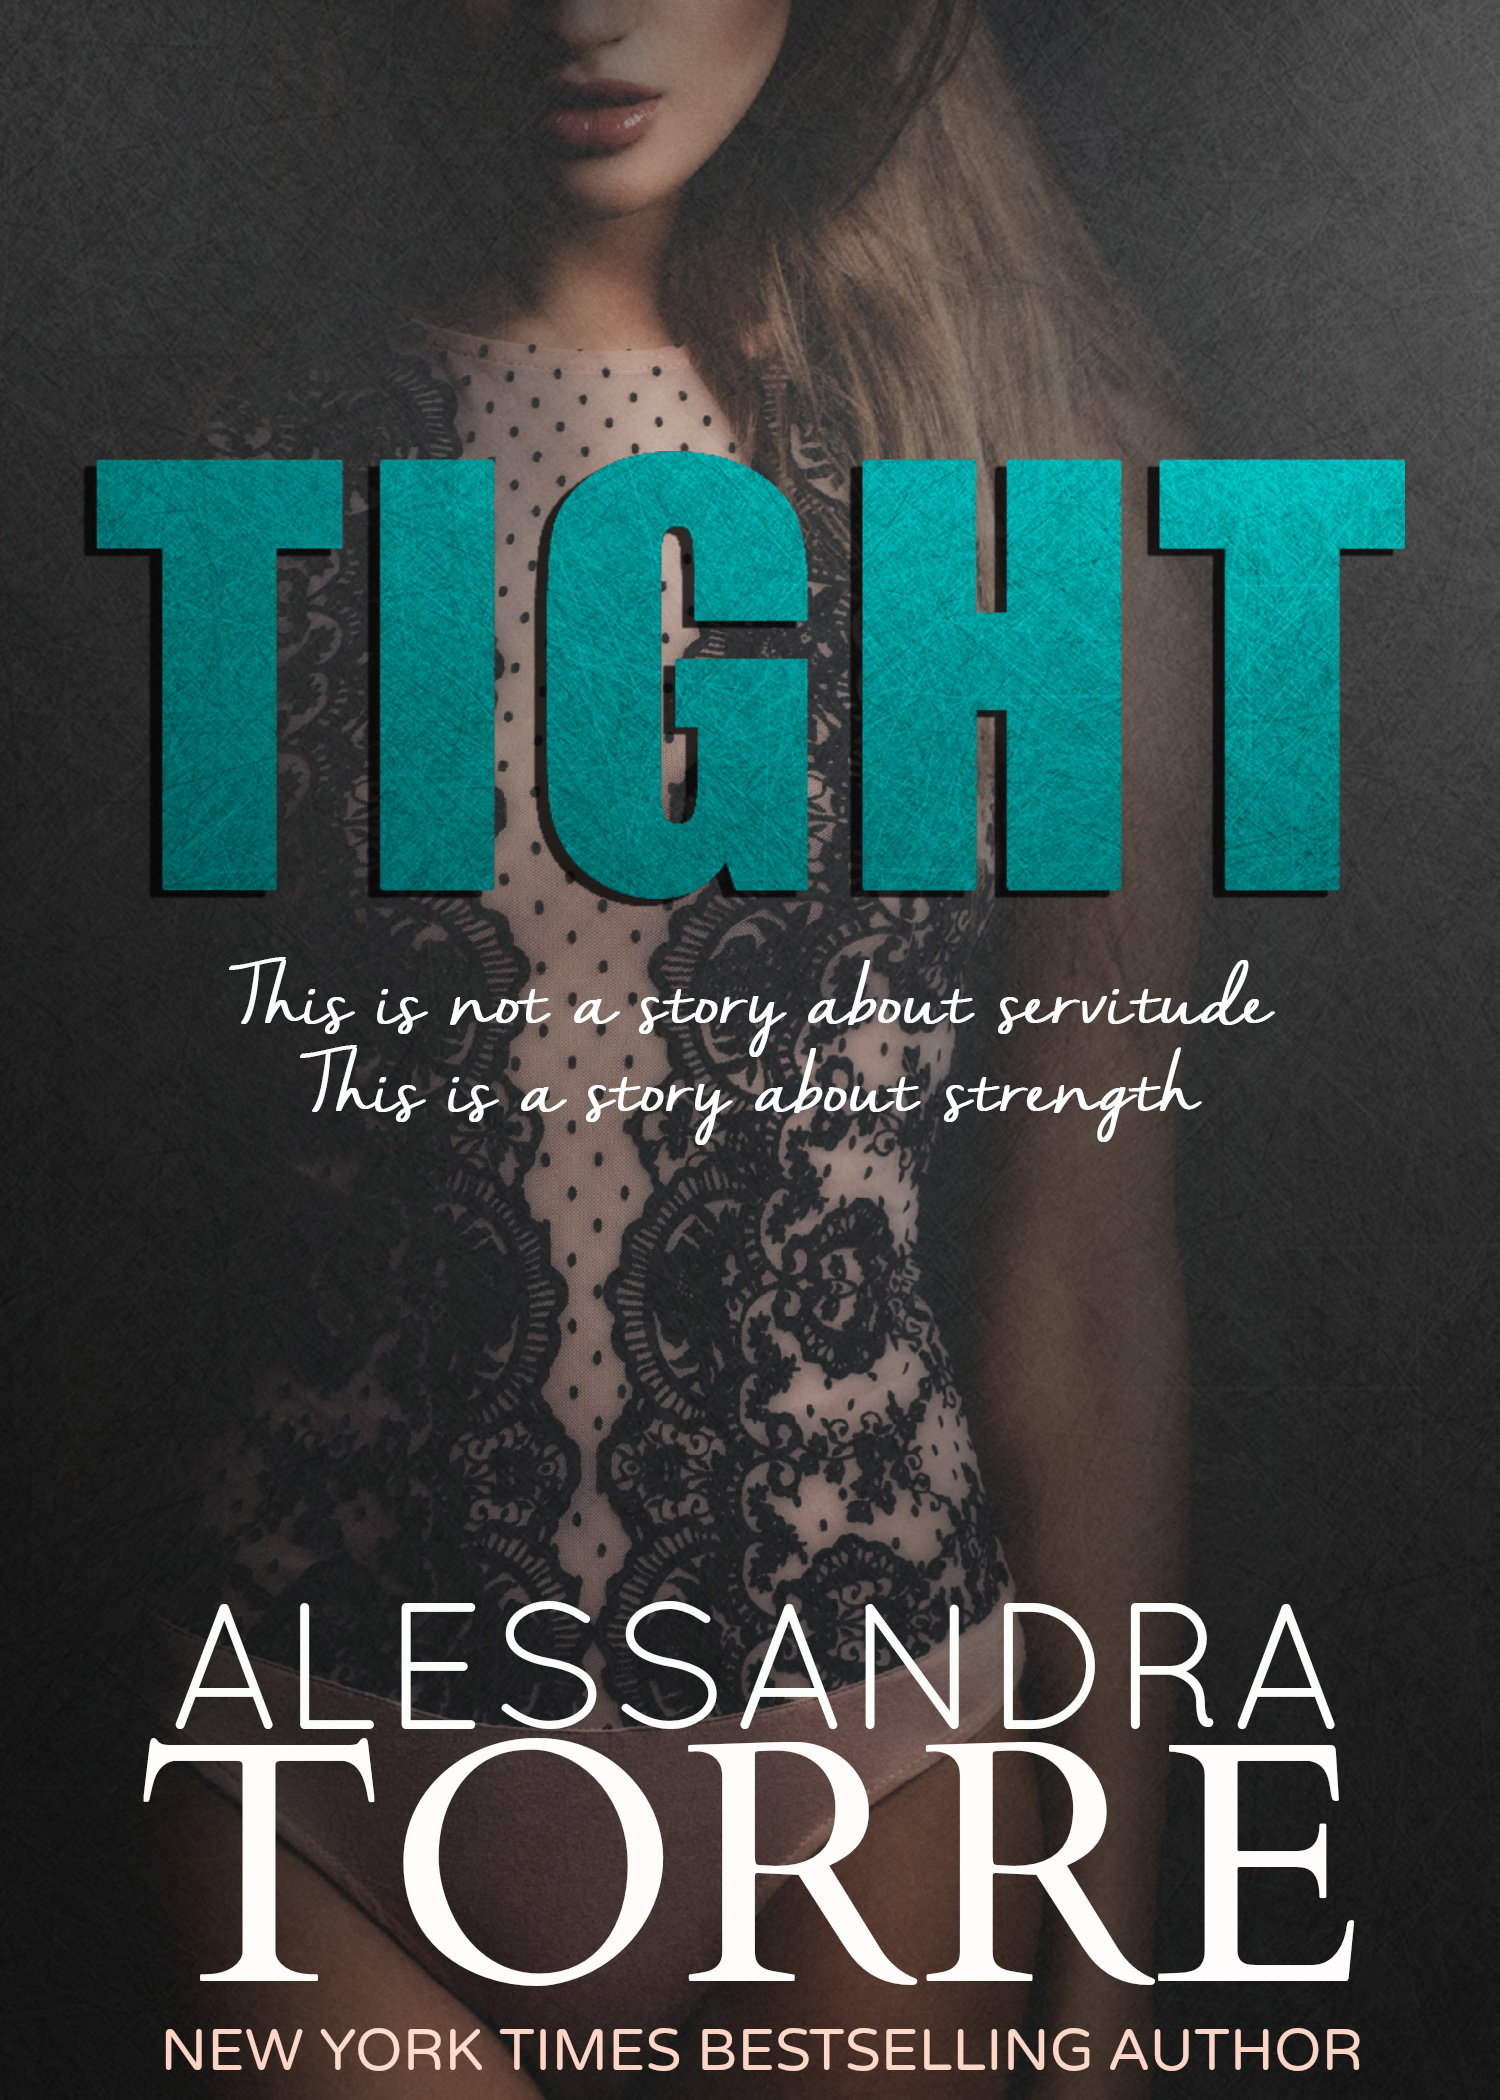 Happy Release Day! REVIEW:  5 Stars for Tight by Alessandra Torre